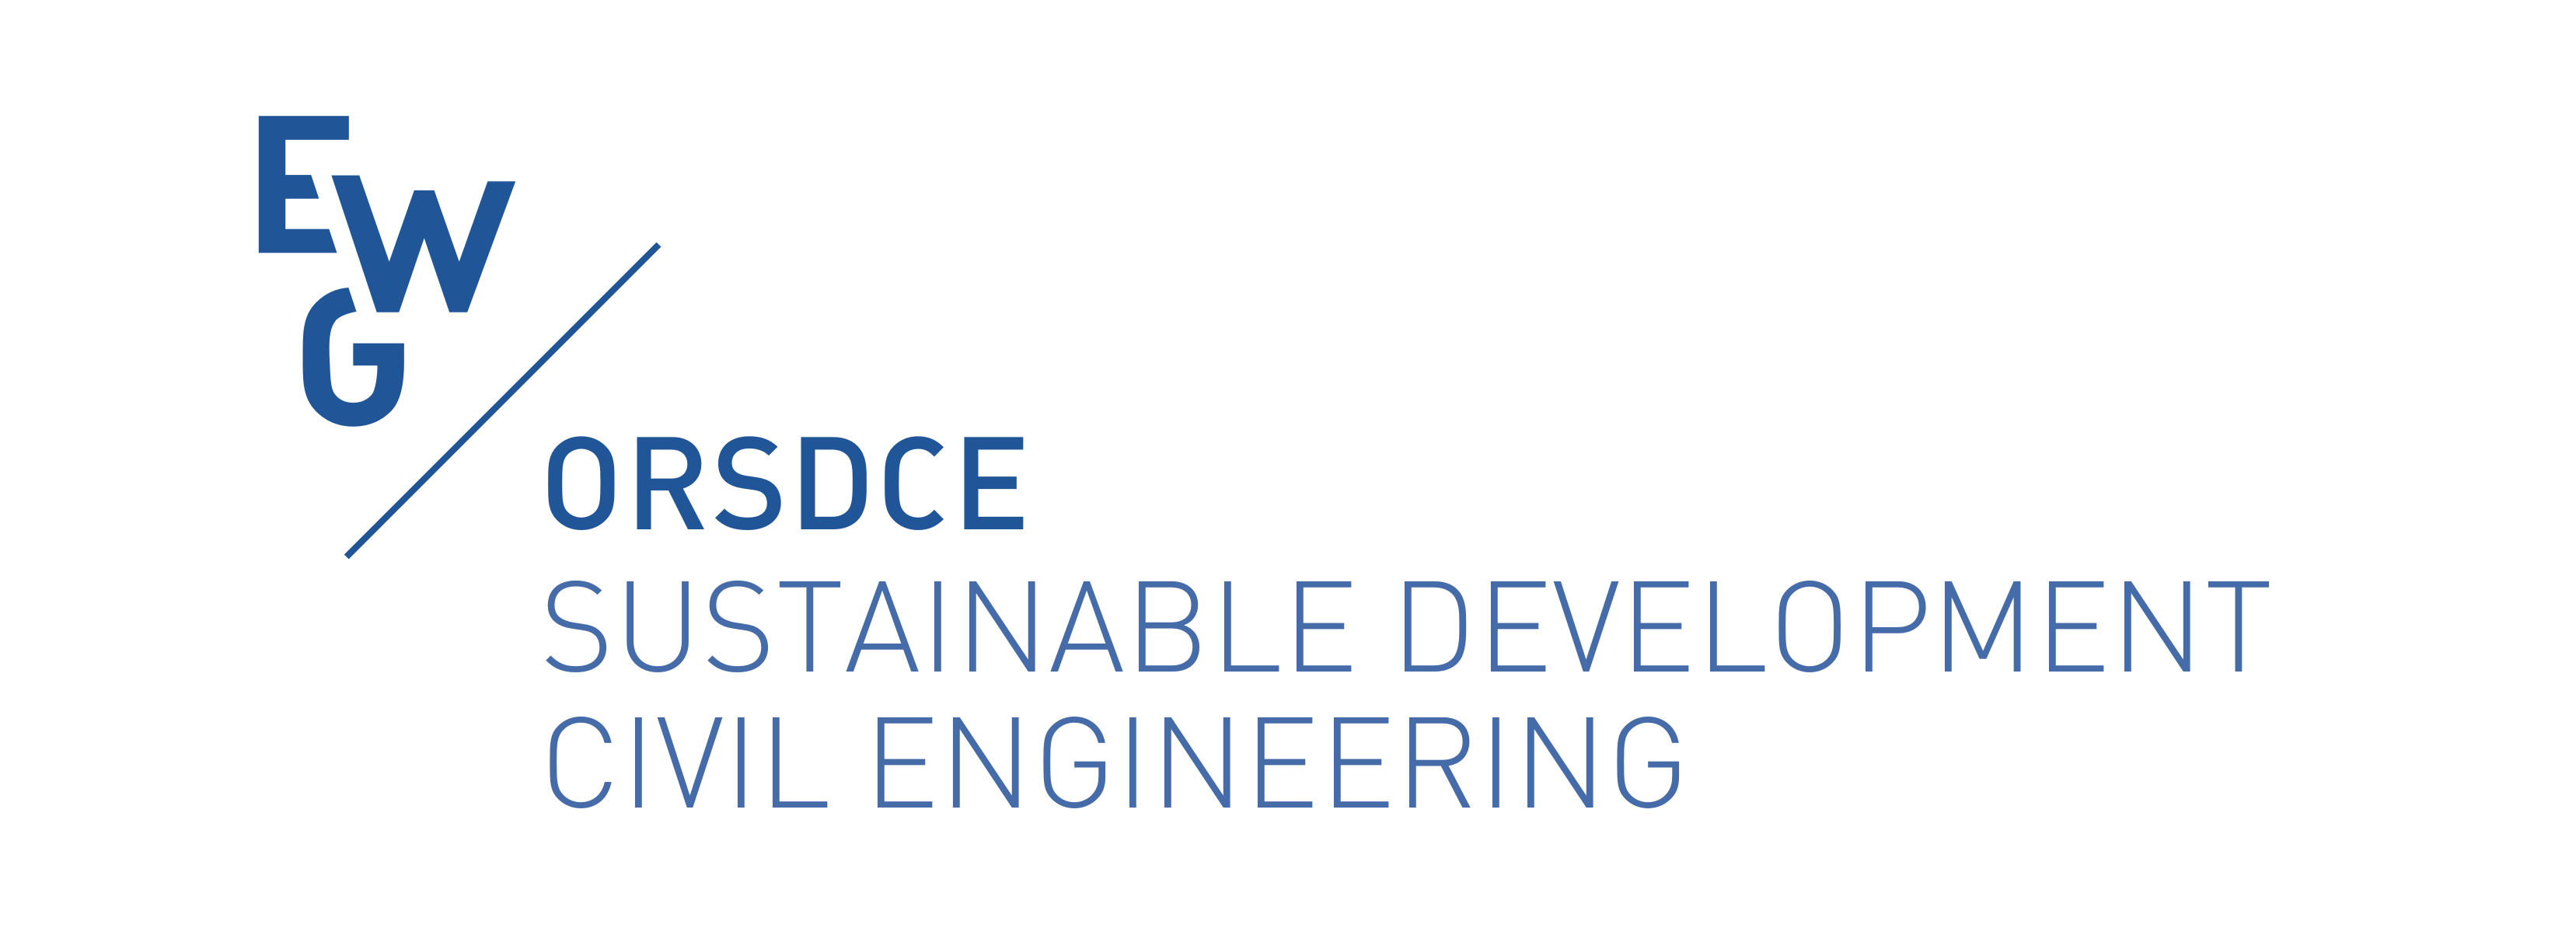 EWG ORSDCE, EURO working group on Sustainable Development and Civil Engineering